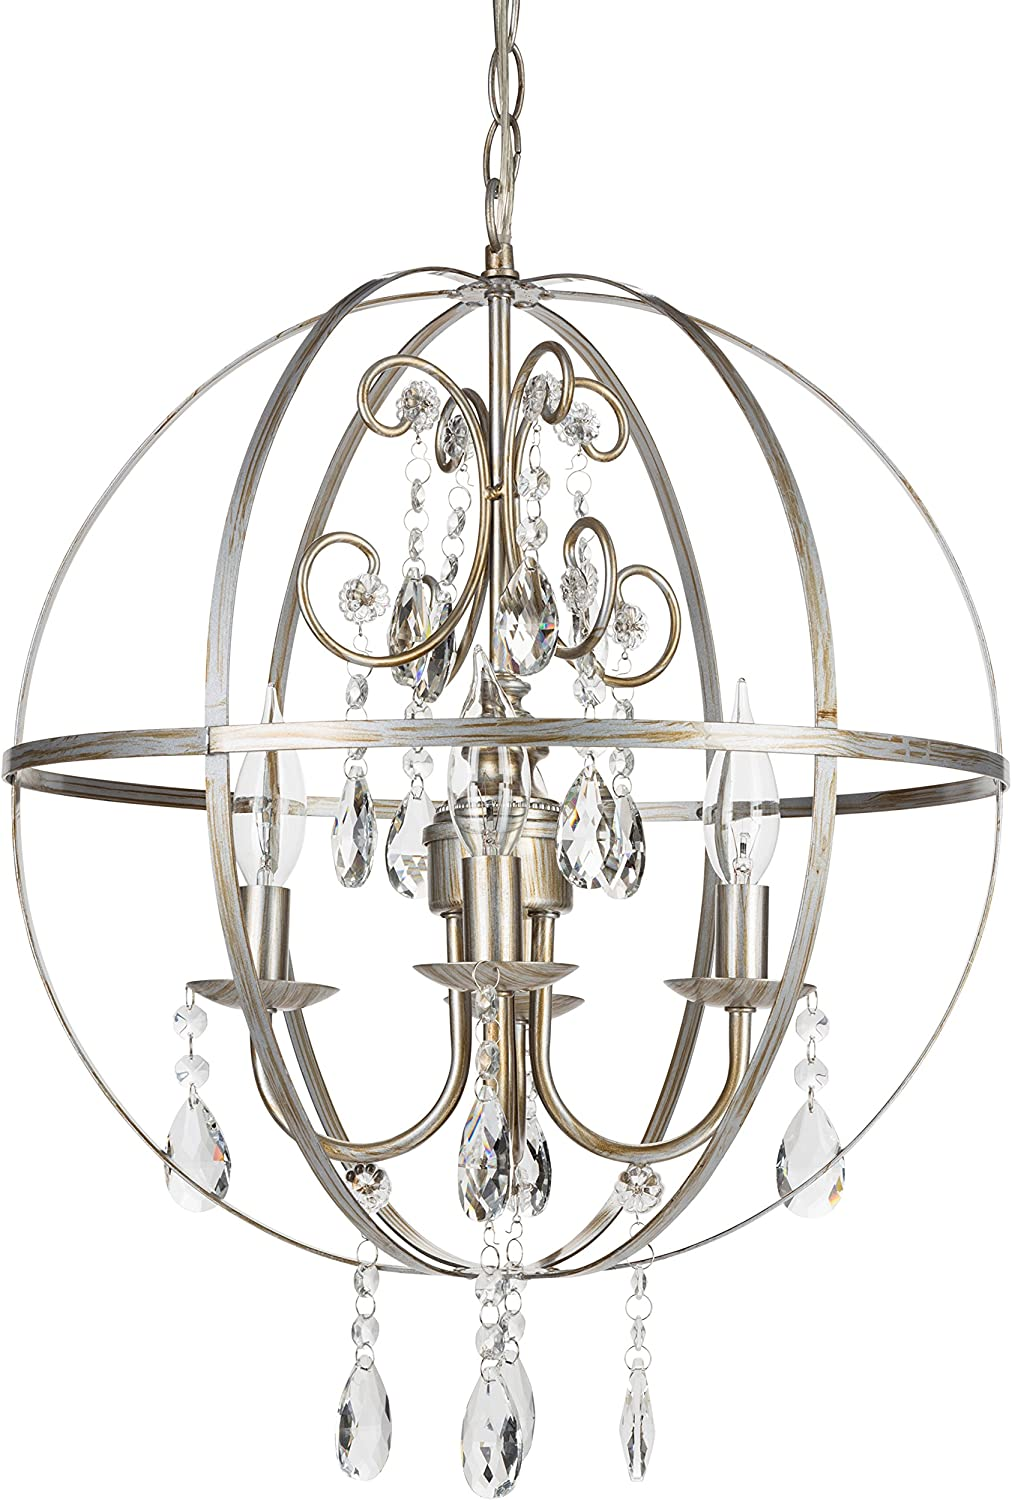 Amalfi Decor 4 Light Orb Crystal Beaded Chandelier, LED Cage Wrought Iron K9 Glass Pendant Light Fixture Vintage Nursery Kids Room Dimmable Plug in Hanging Ceiling Lamp, Silver